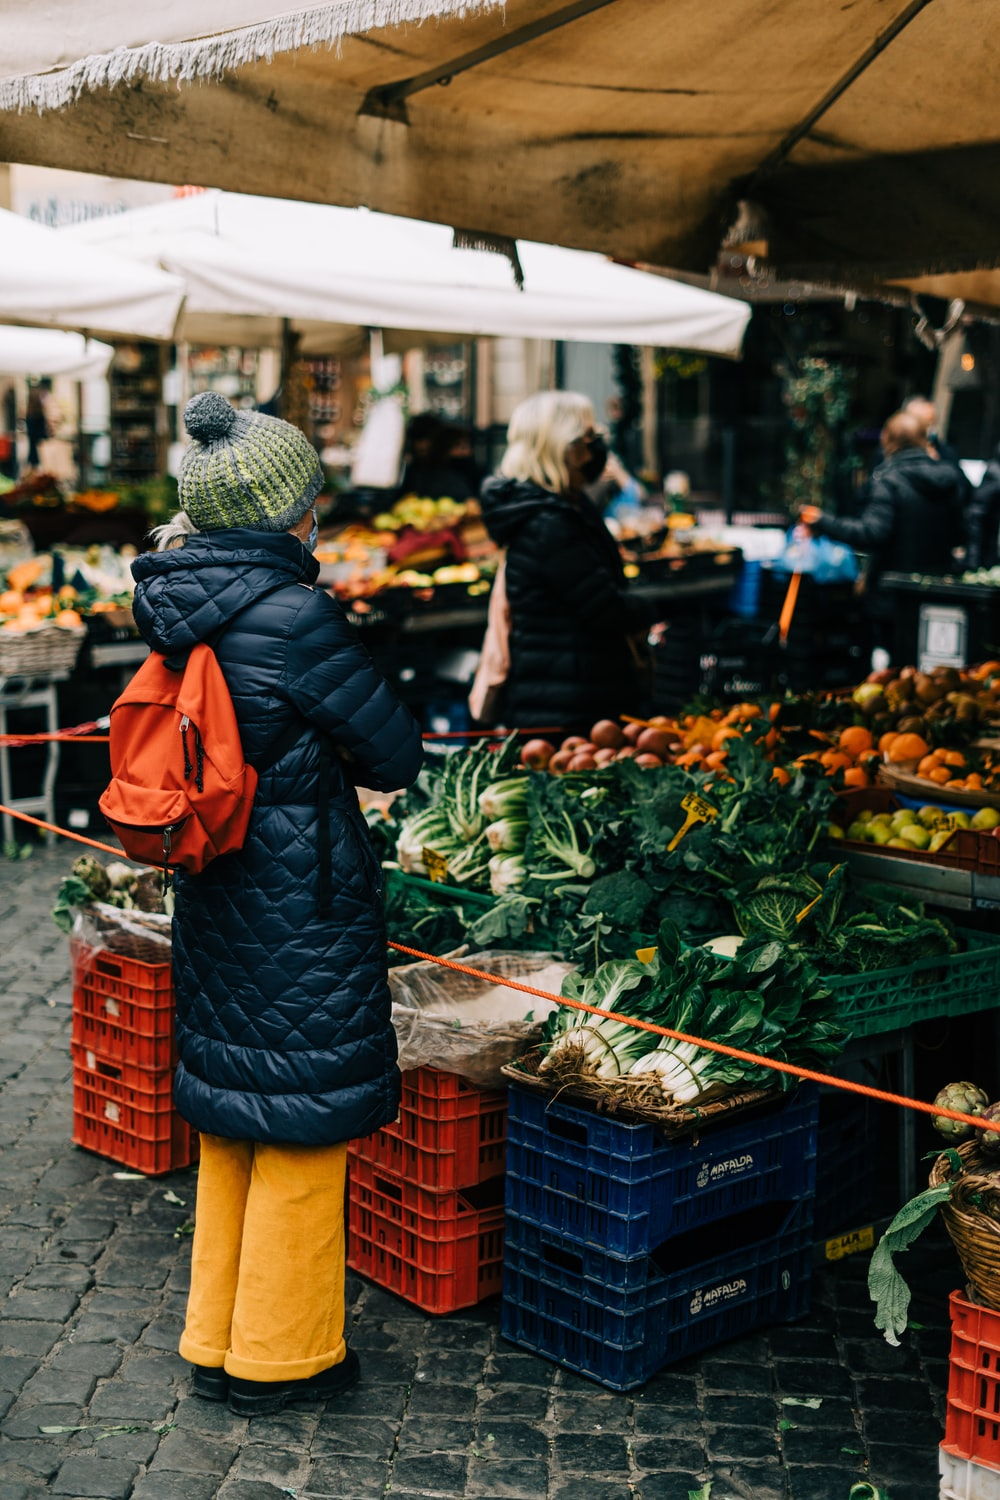 woman in black knit cap and orange coat standing in front of green vegetable display